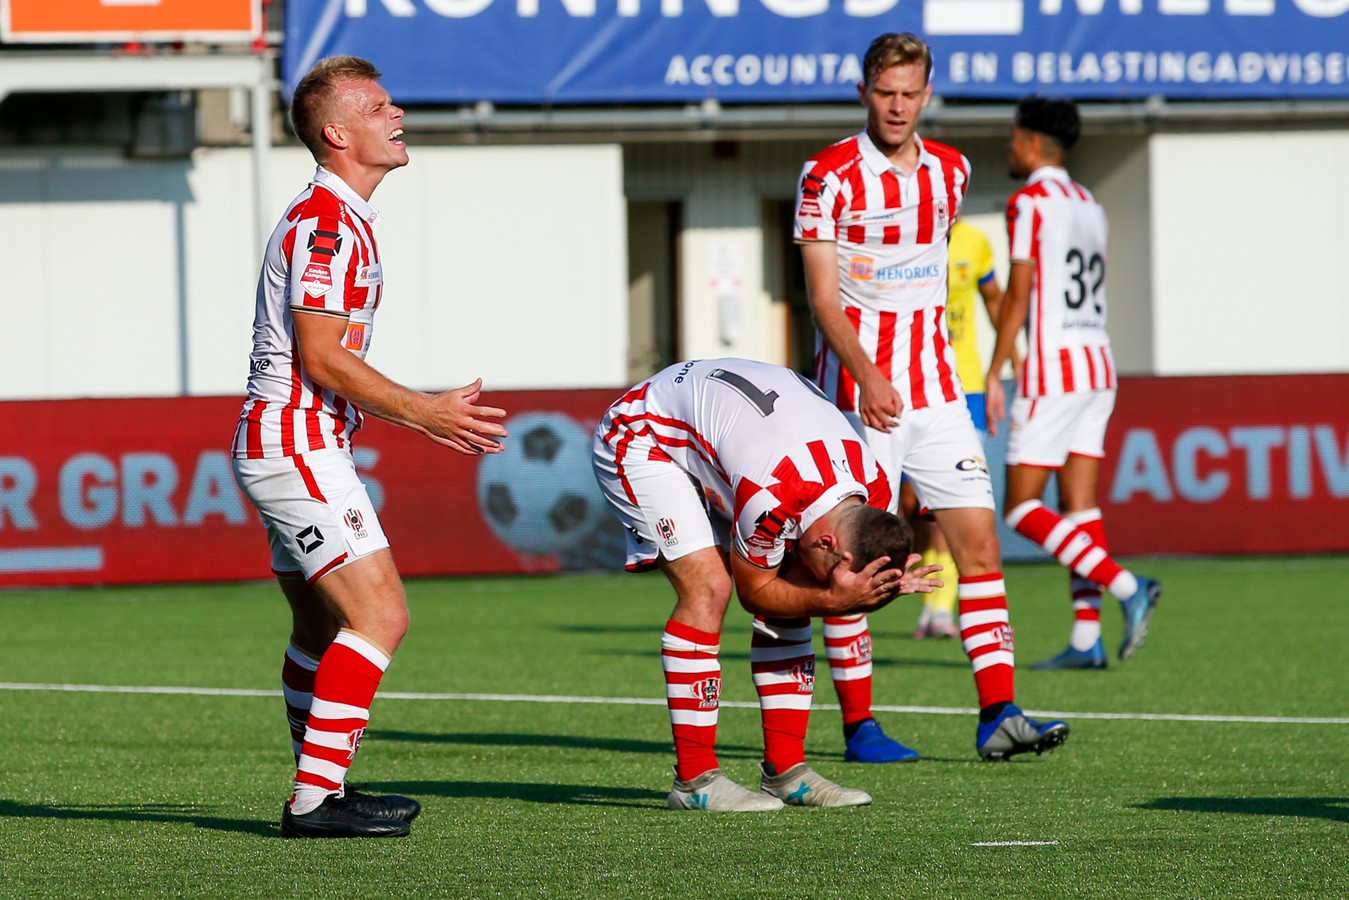 19-09-2020: Voetbal: TOP Oss v Cambuur: Oss Grad Damen of TOP Oss, Lorenzo Pique of TOP Oss after referee Erwin Blank (not in picture) giving a penalty